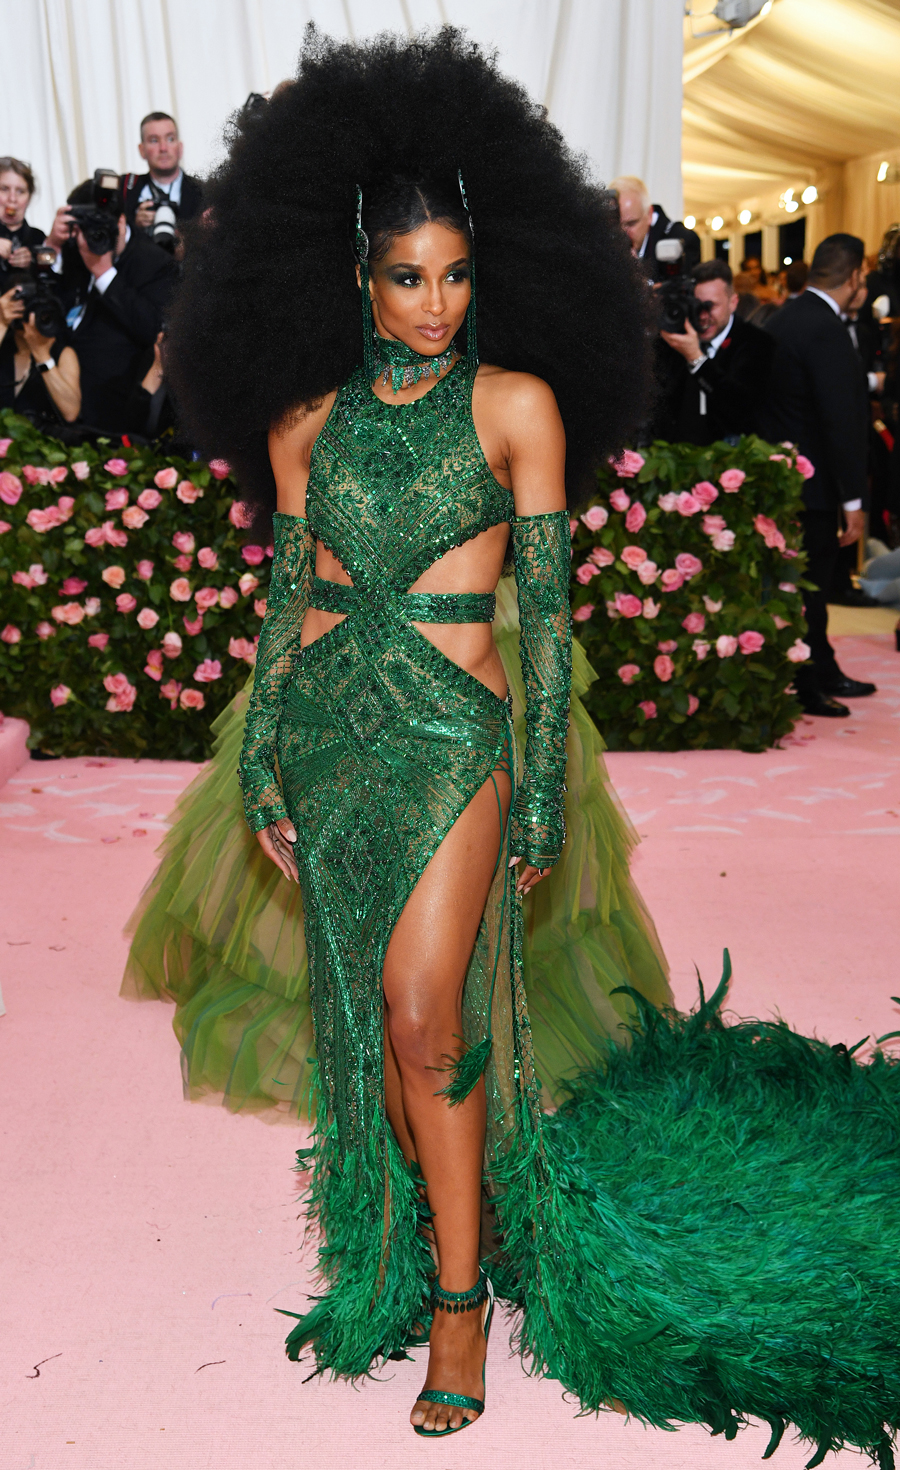 Atlanta celebs at Met Gala 2019